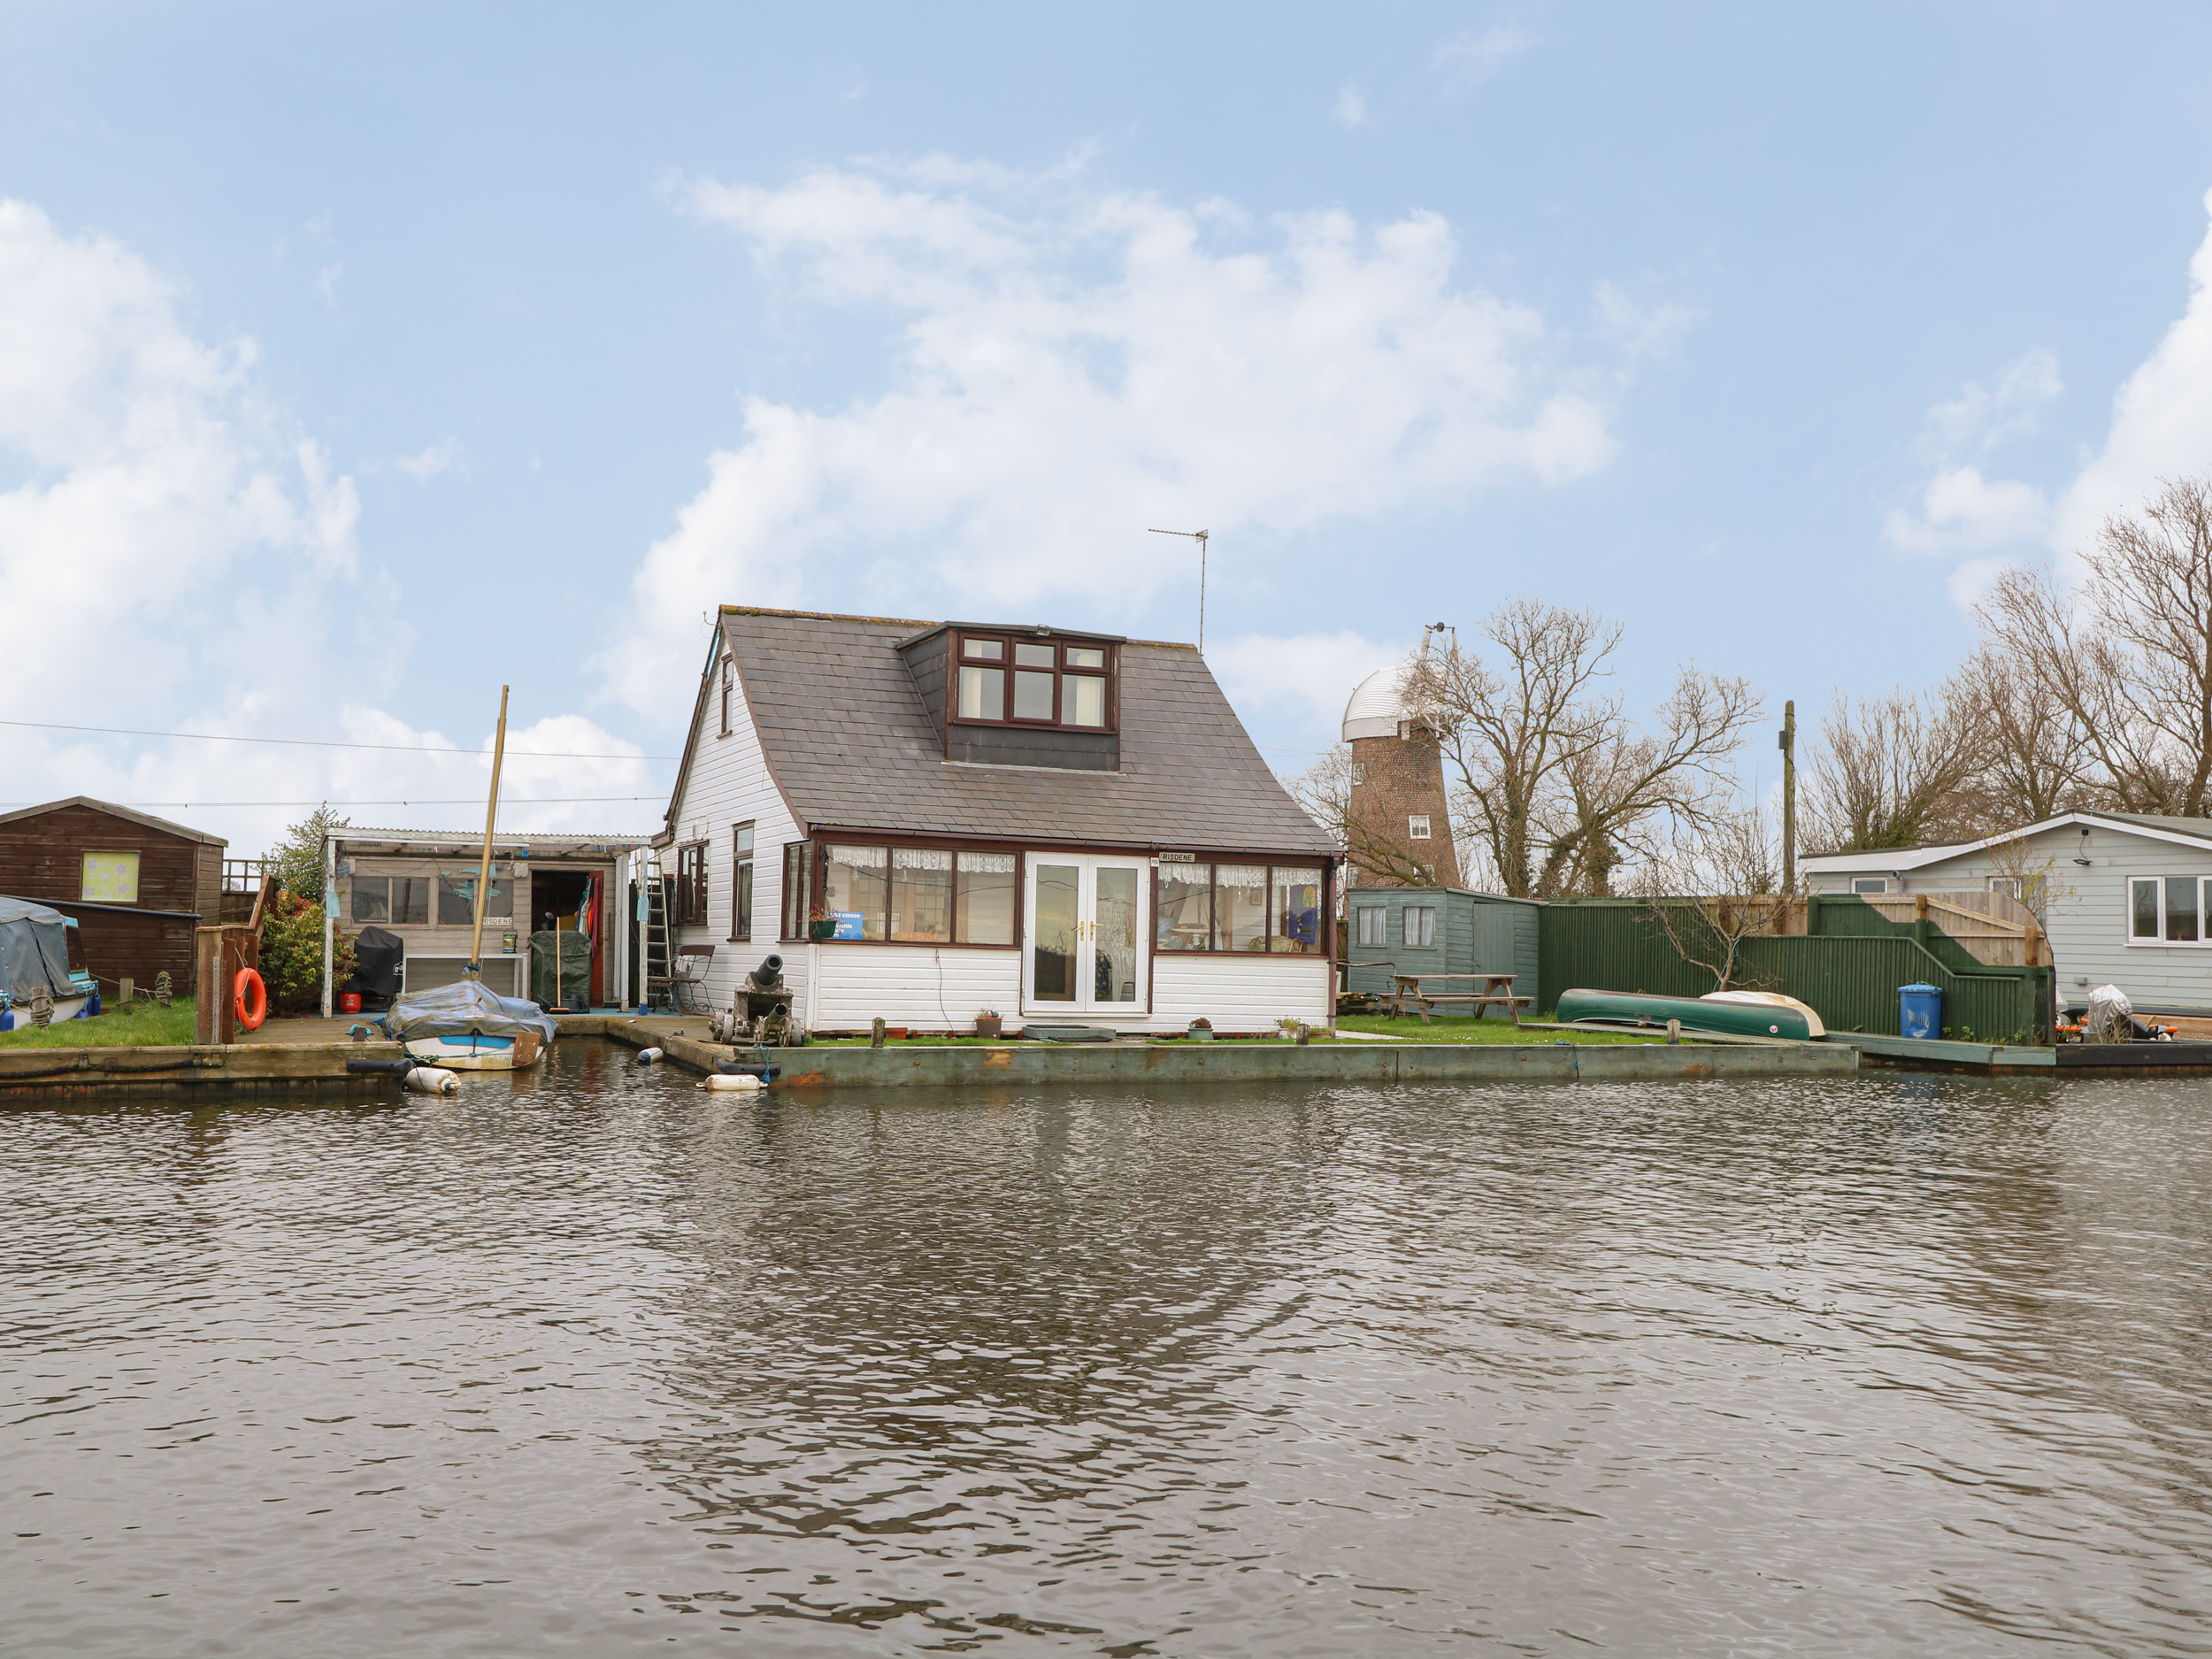 3 bedroom Cottage for rent in Potter Heigham